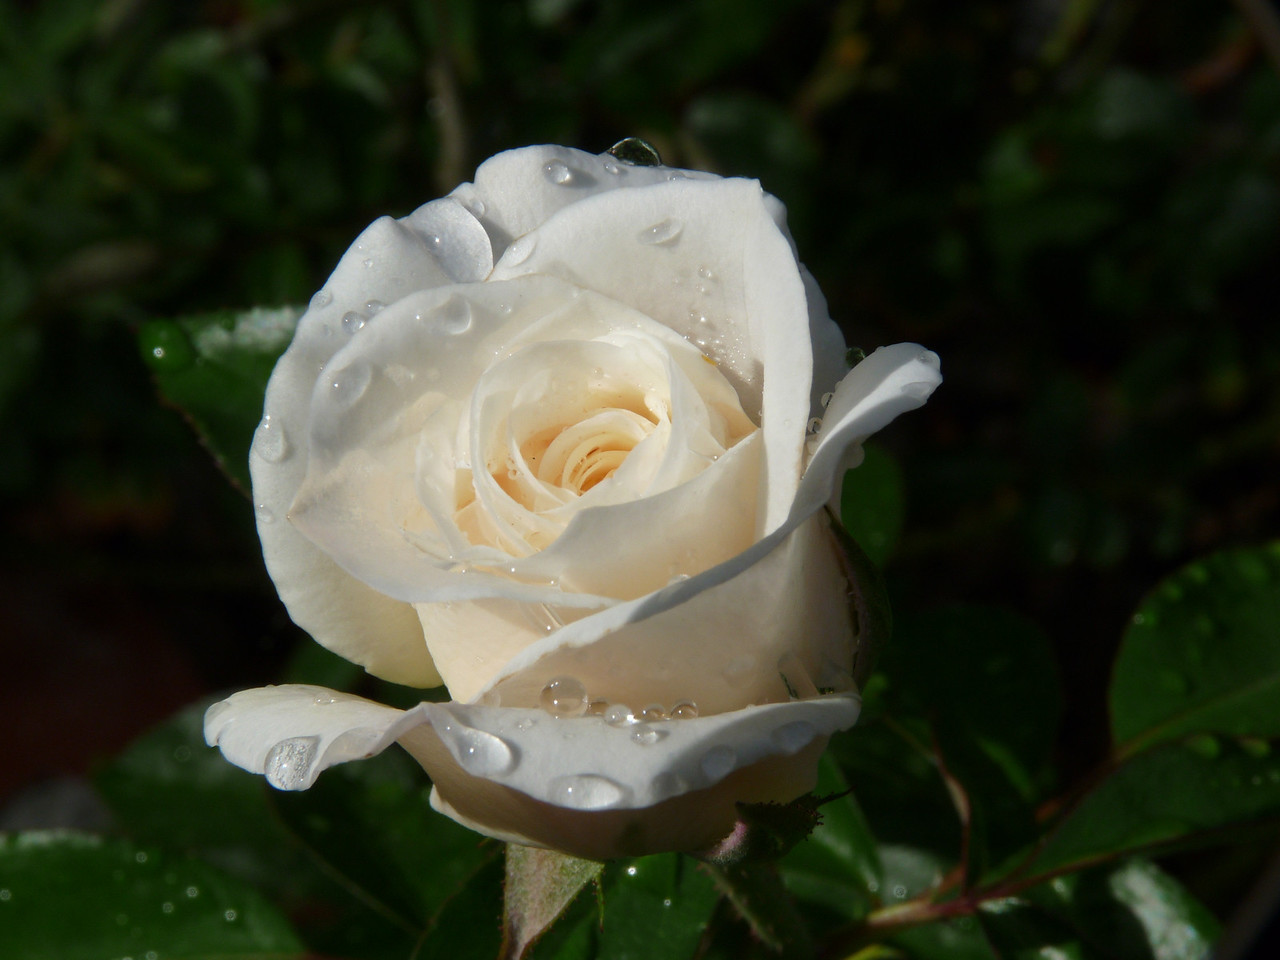 As the Hot Shot pointed out to me, we don't ever want to become so jaded that we turn a blind eye to a lovely dew-covered rose!